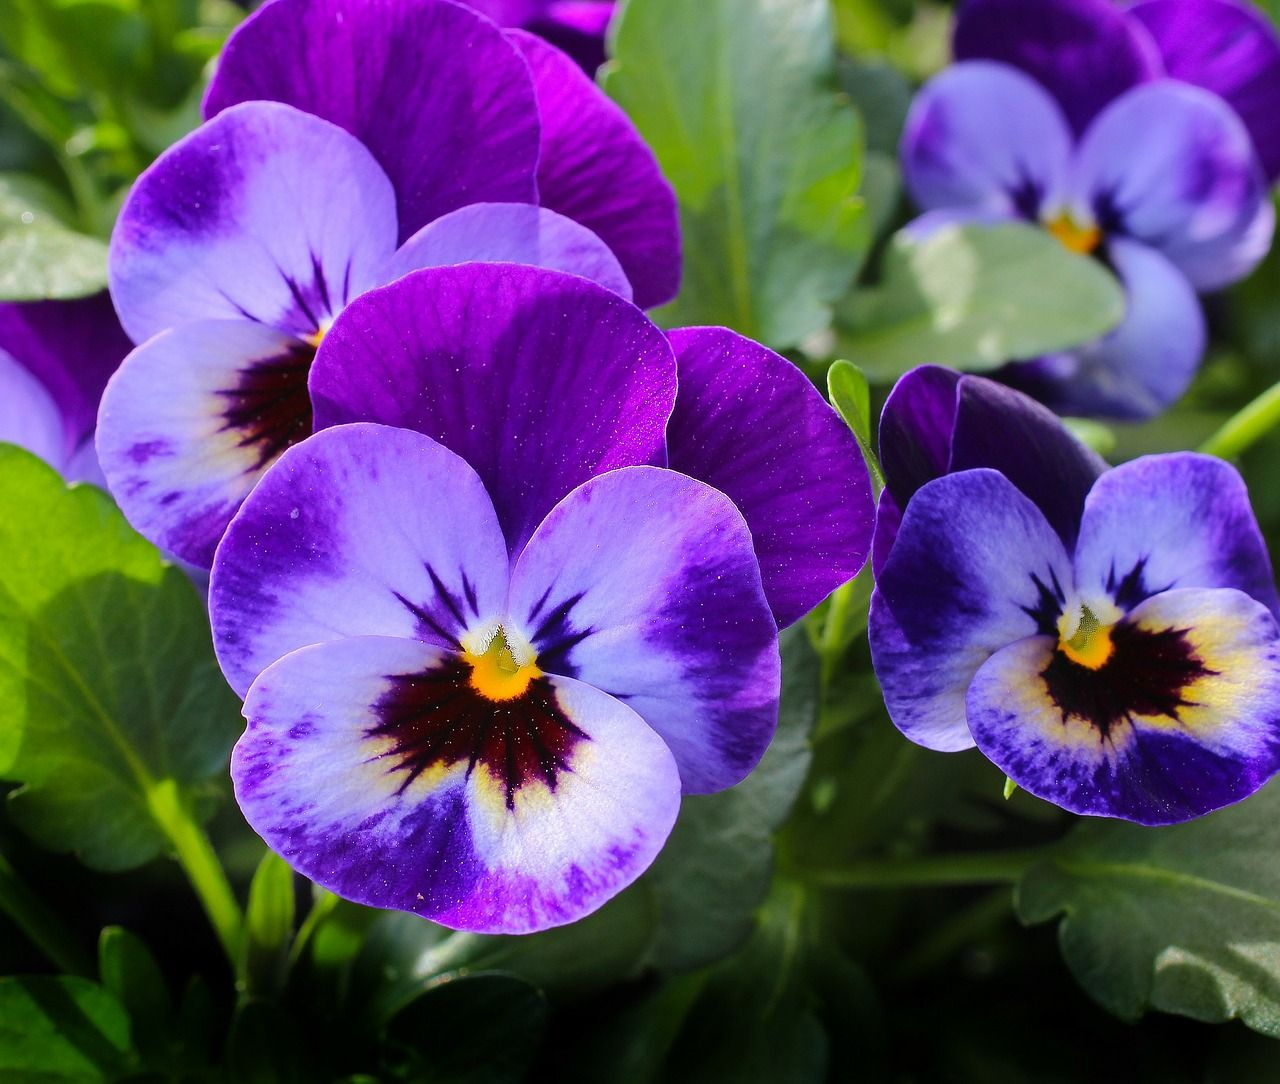 Pansy Flowers Plant Nature Spring Violet Blossom Pansies Flowers Pansies Flower Meanings